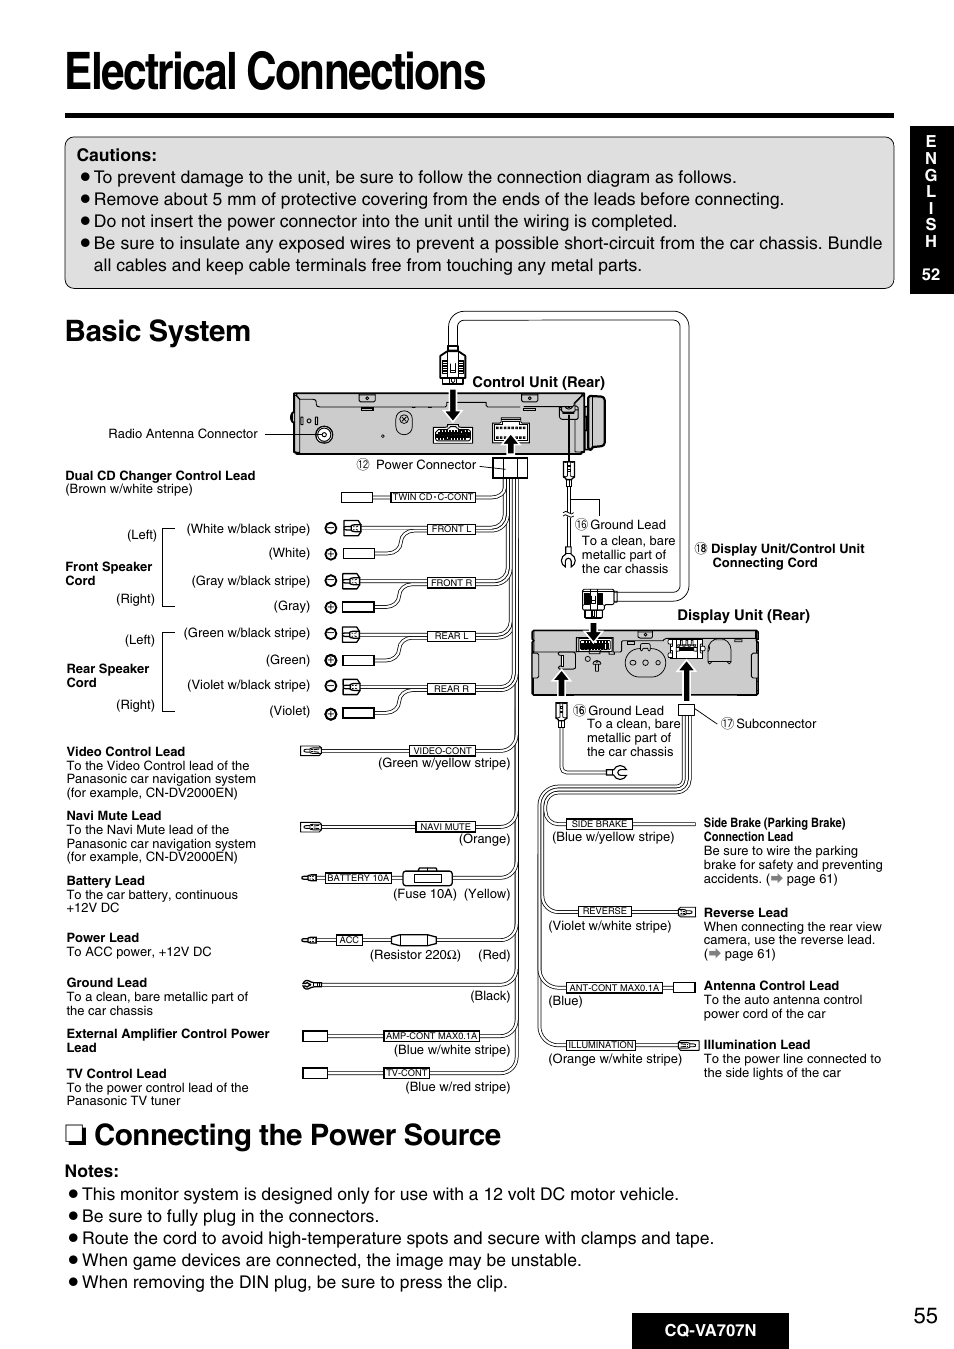 Electrical connections, Basic system ❏ connecting the power source ...